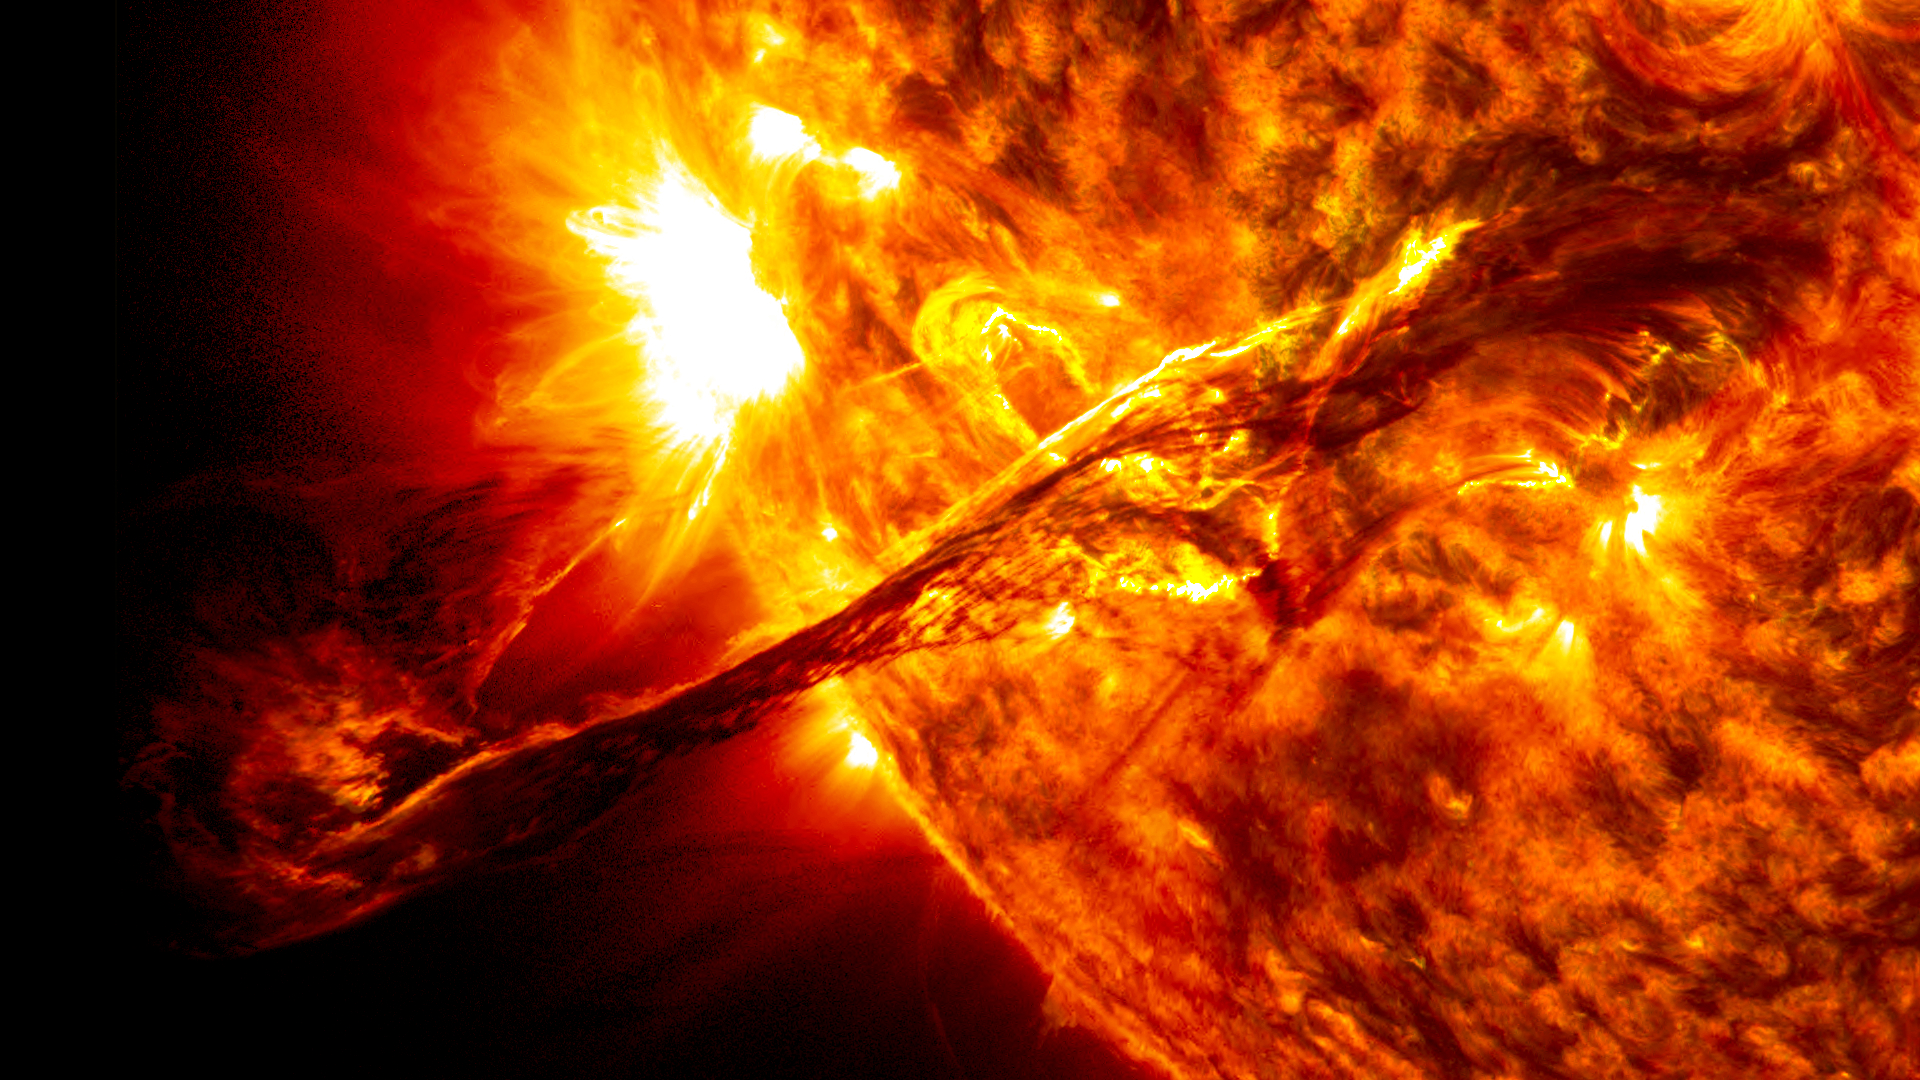 On-Aug-a-giant-prominence-on-the-sun-erupted-sending-out-particles-and-a-shock-wave-that-wallpaper-wpc5807818